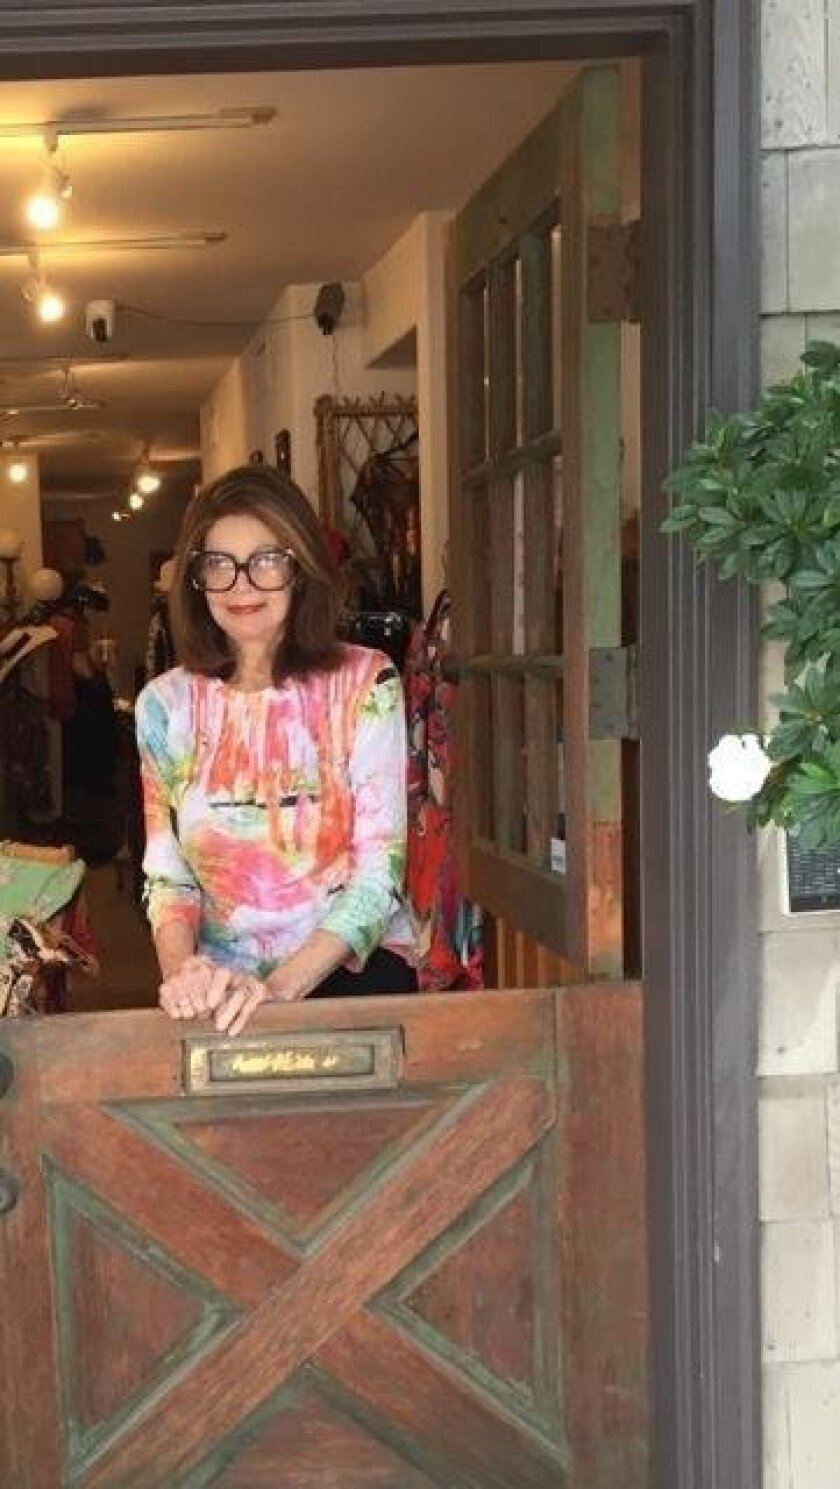 Myrna Naegle, owner of the Shoppe at 2210 in La Jolla Shores, will close the business by late August.